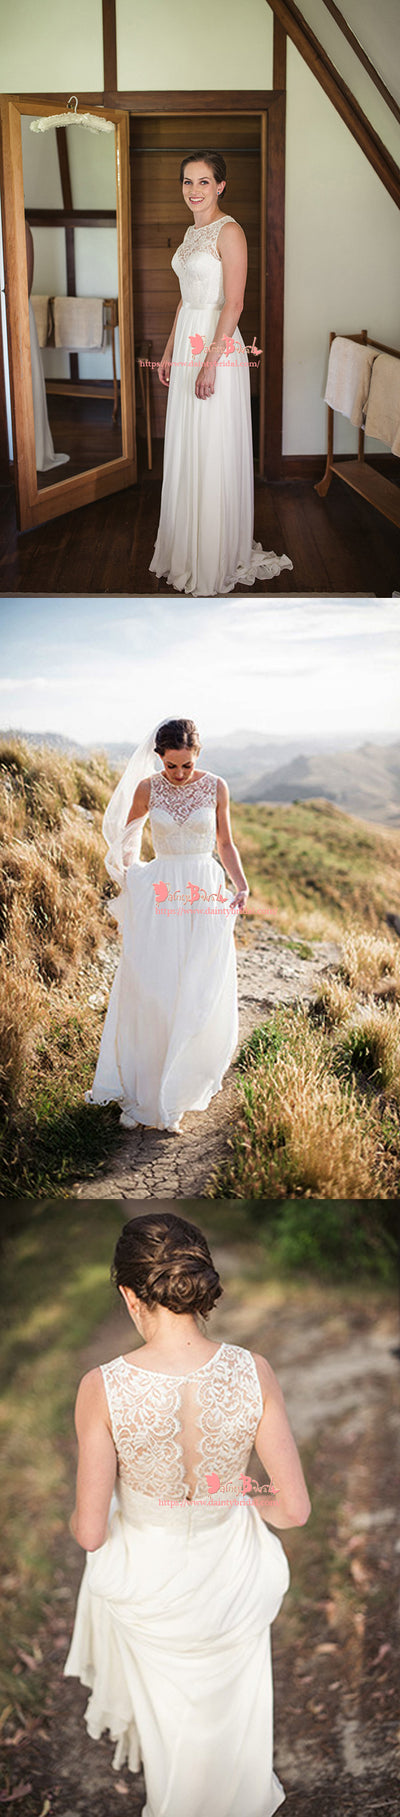 Popular Simple Round Neck Sleeveless Open Back Lace Top Chiffon A-line Wedding Dresses,DB0117